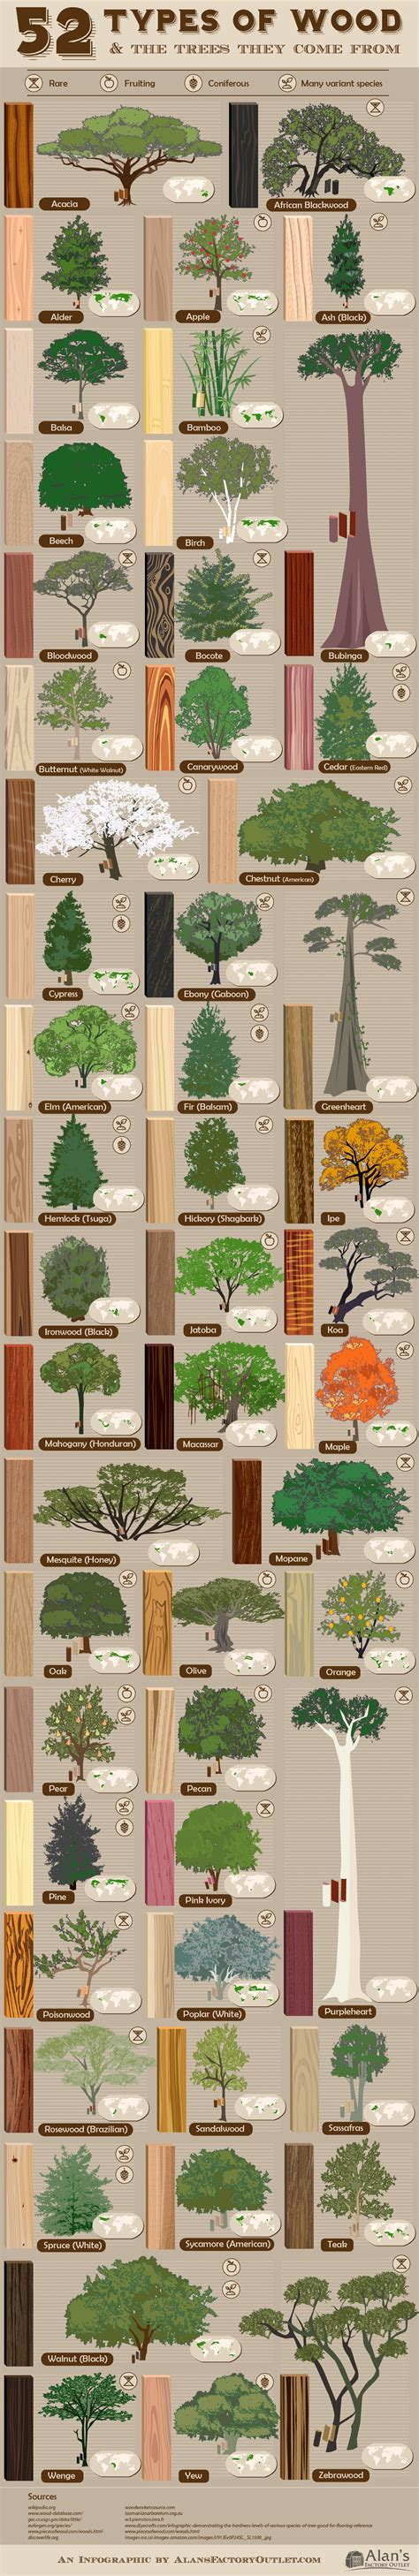 What Type Of Tree Is Used To Make Paper - 52 types of wood and the trees they come from